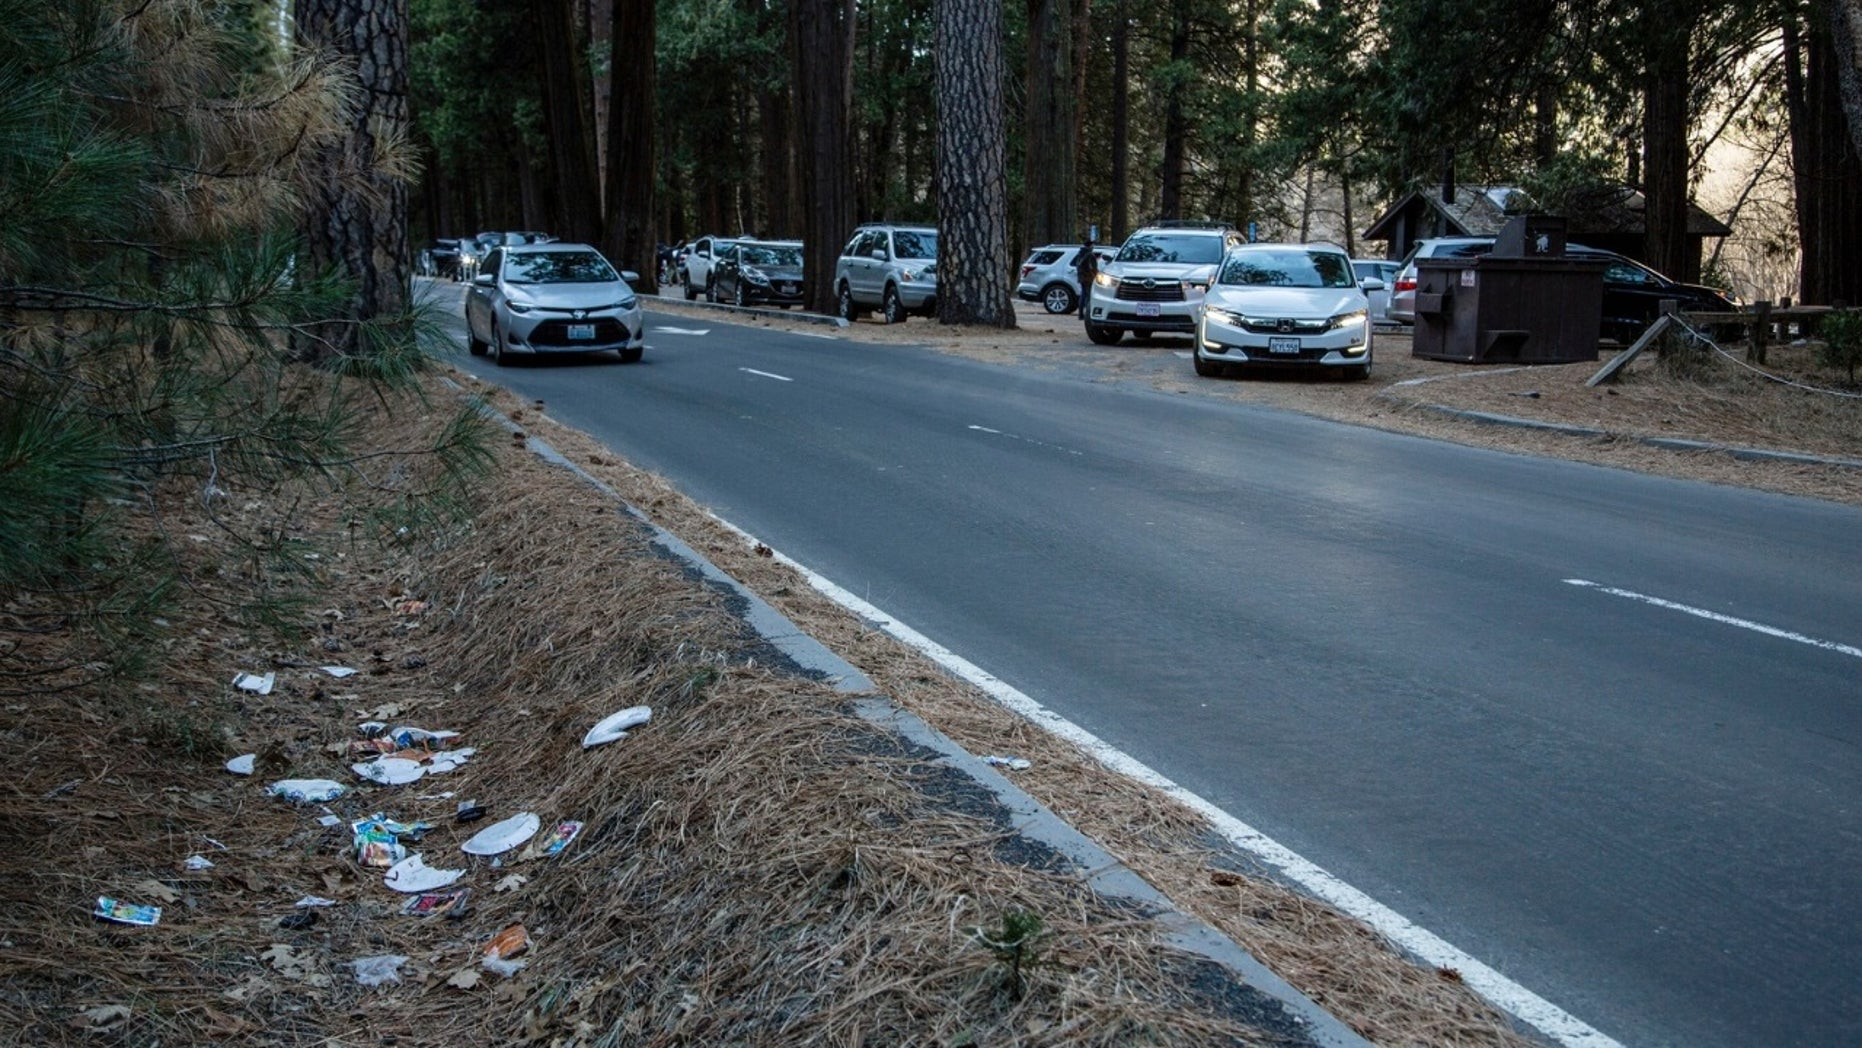 National parks brimming with trash, human feces as government shutdown continues